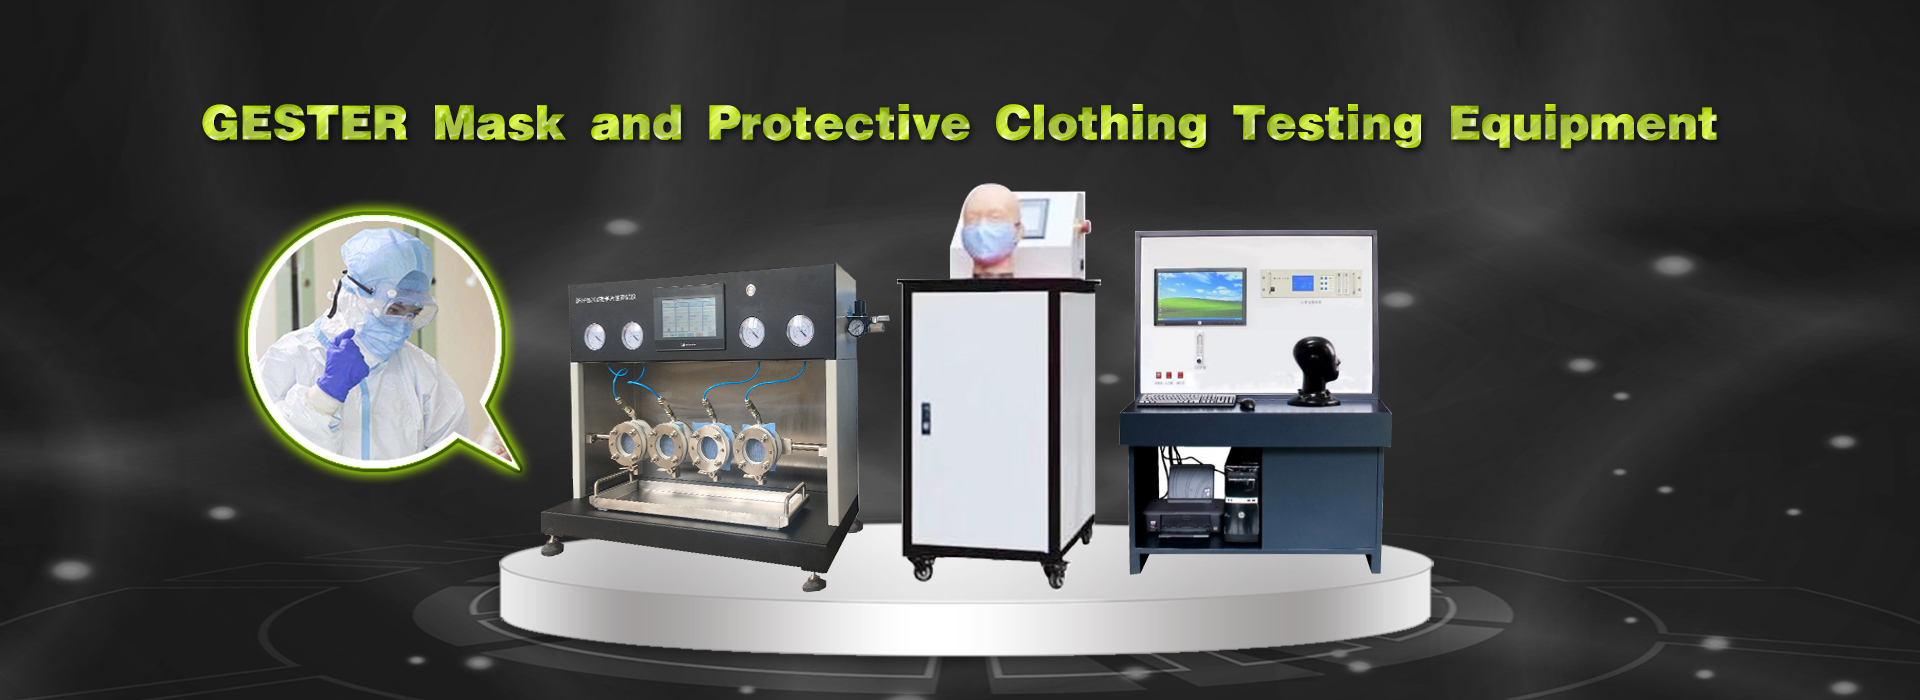 Mask and Protective Clothing Testing Equipment